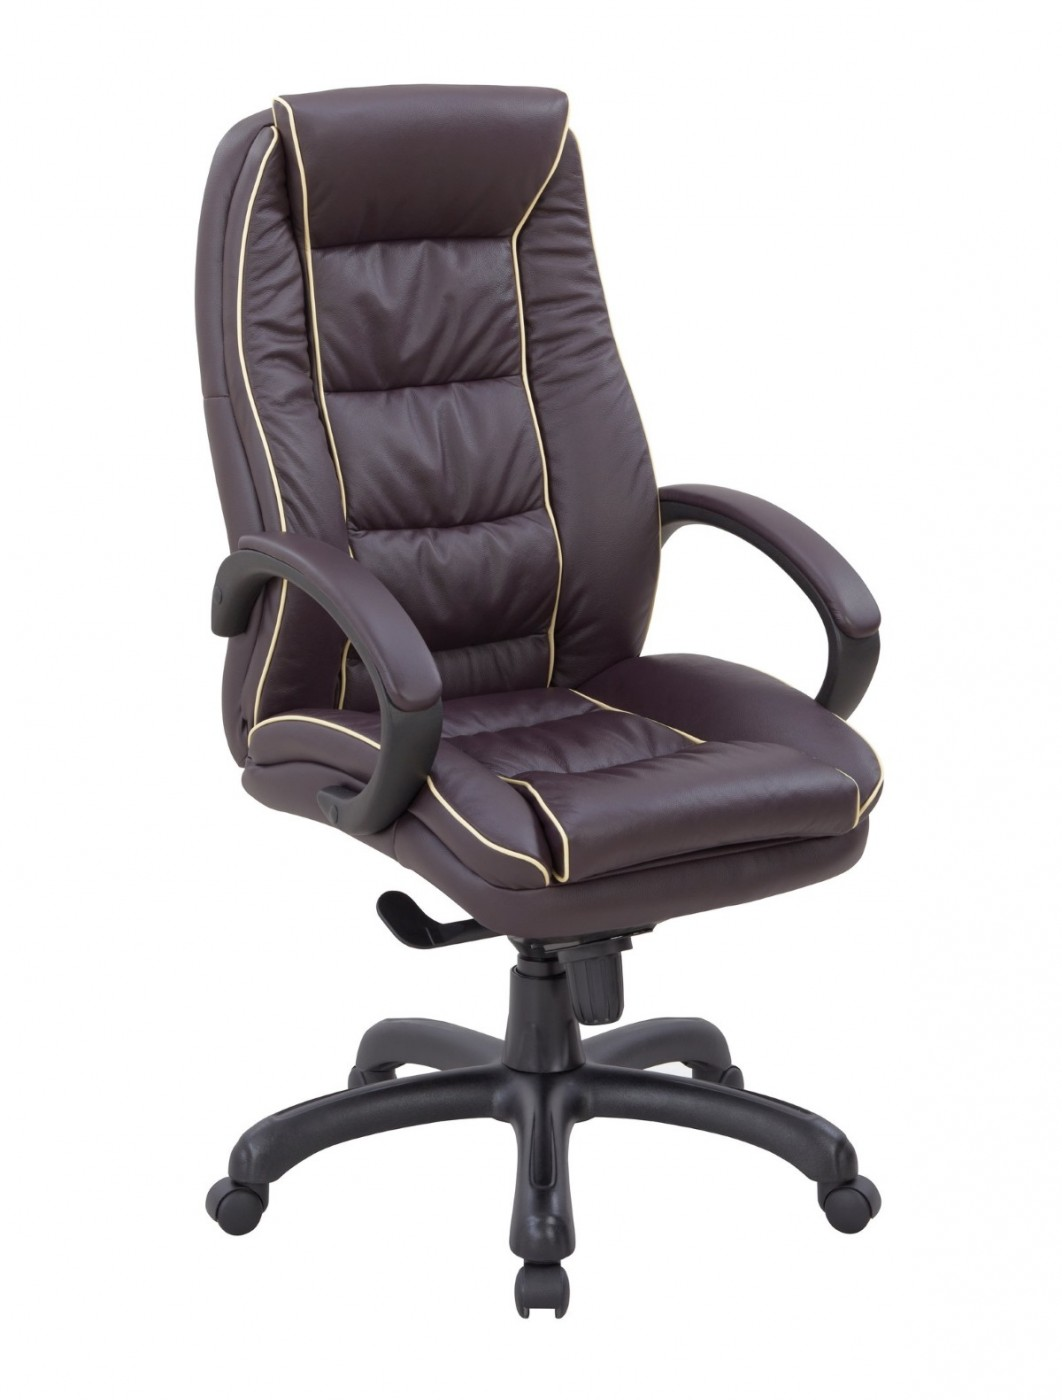 Office Chair Burgundy Leather Truro Executive Chair 609ktag Lby 121 Office Furniture